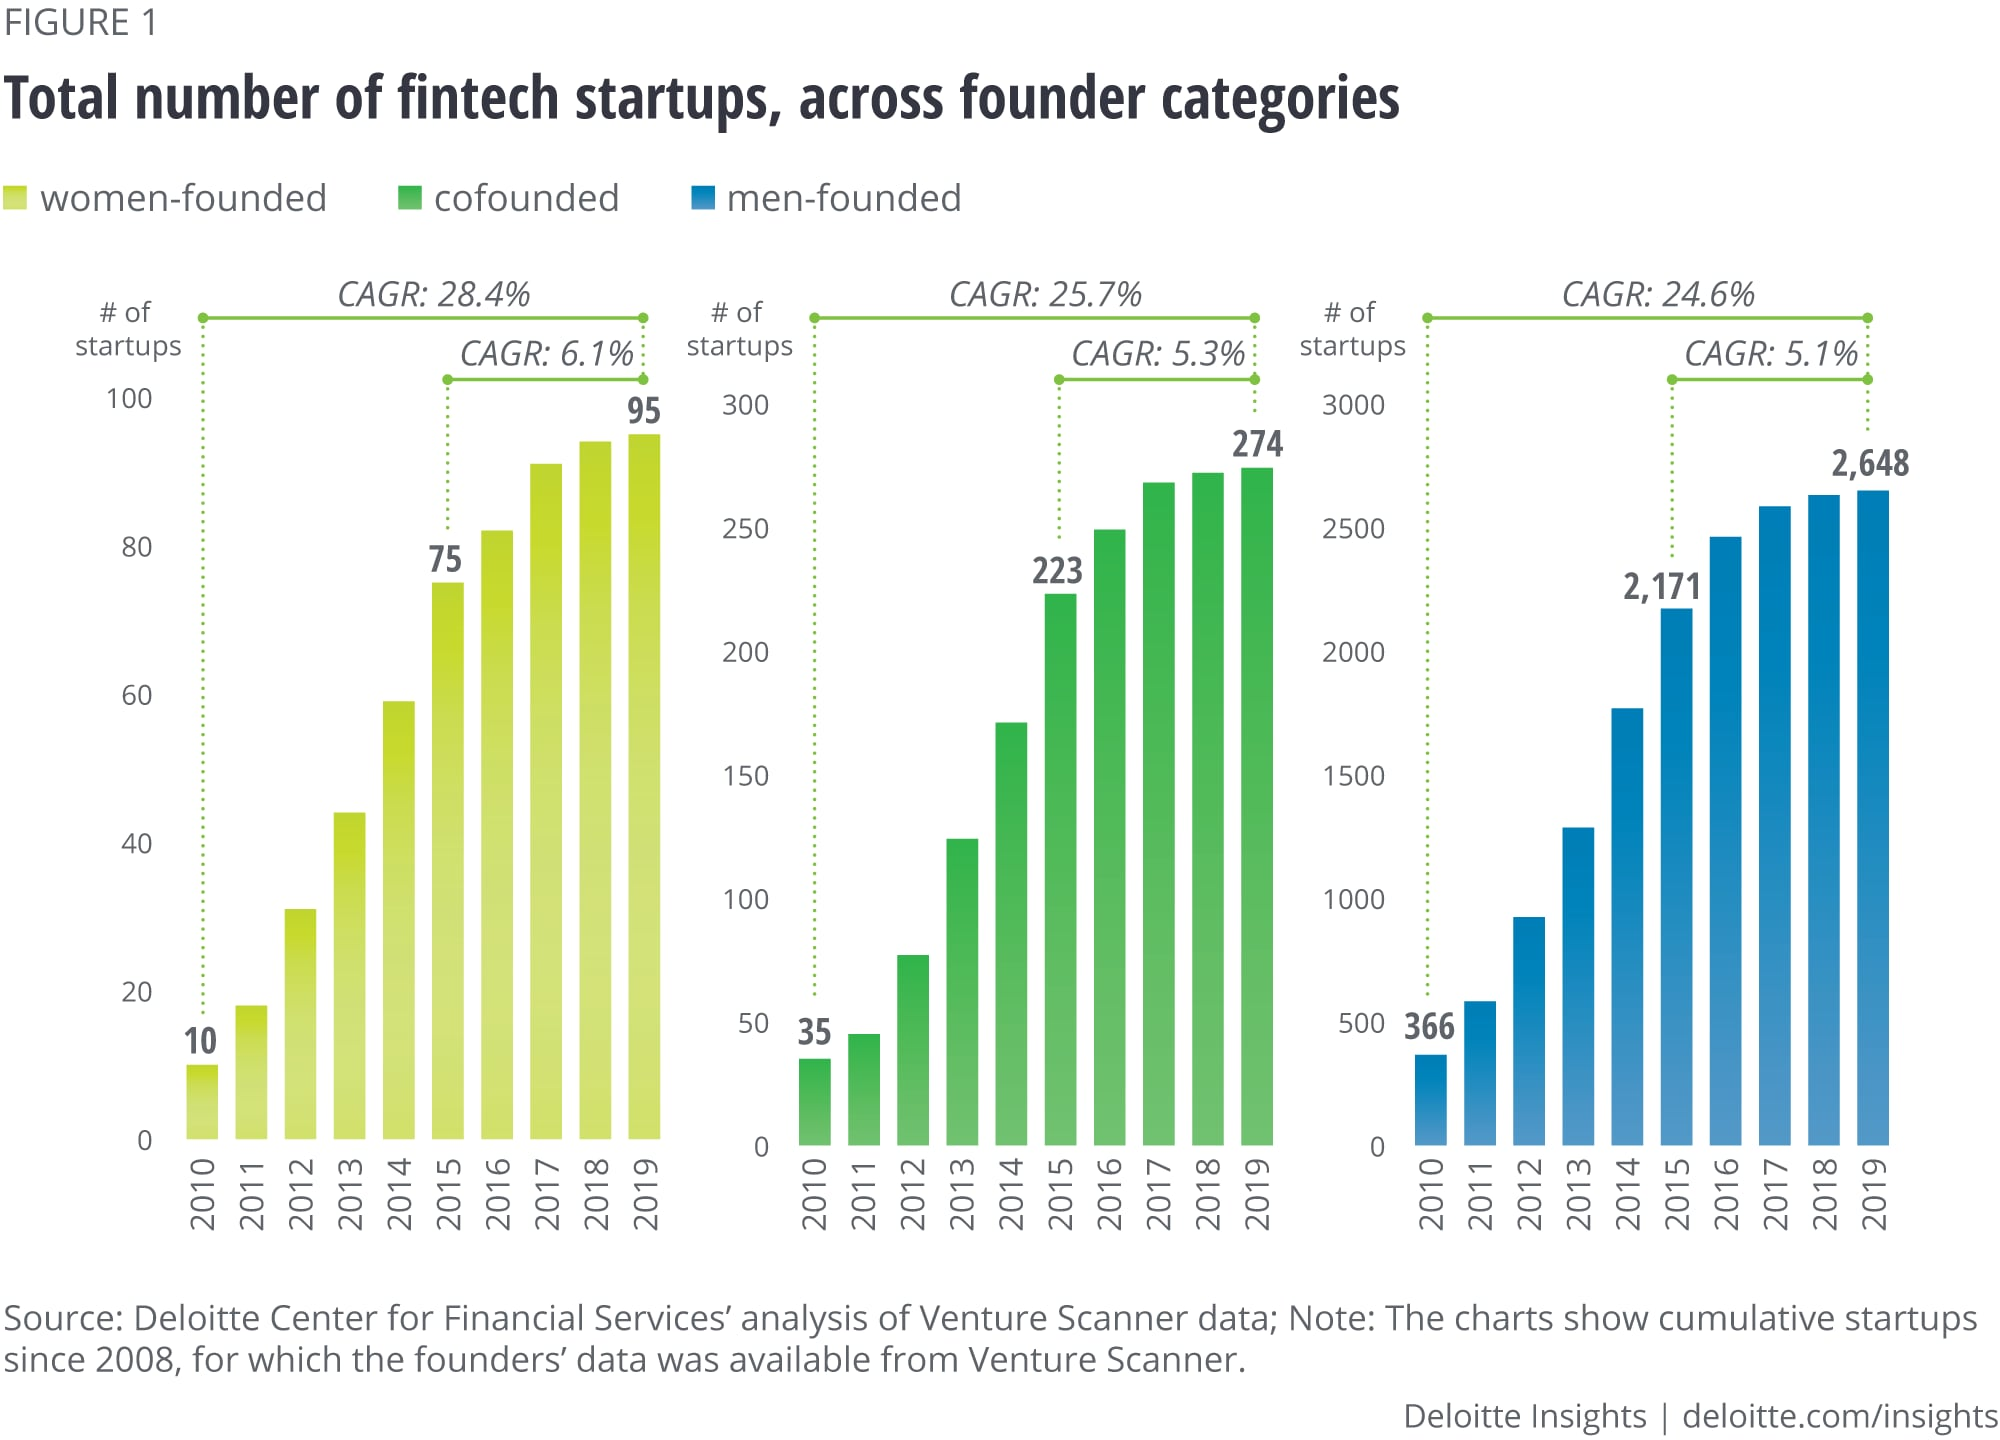 Total cumulative startups across founder categories